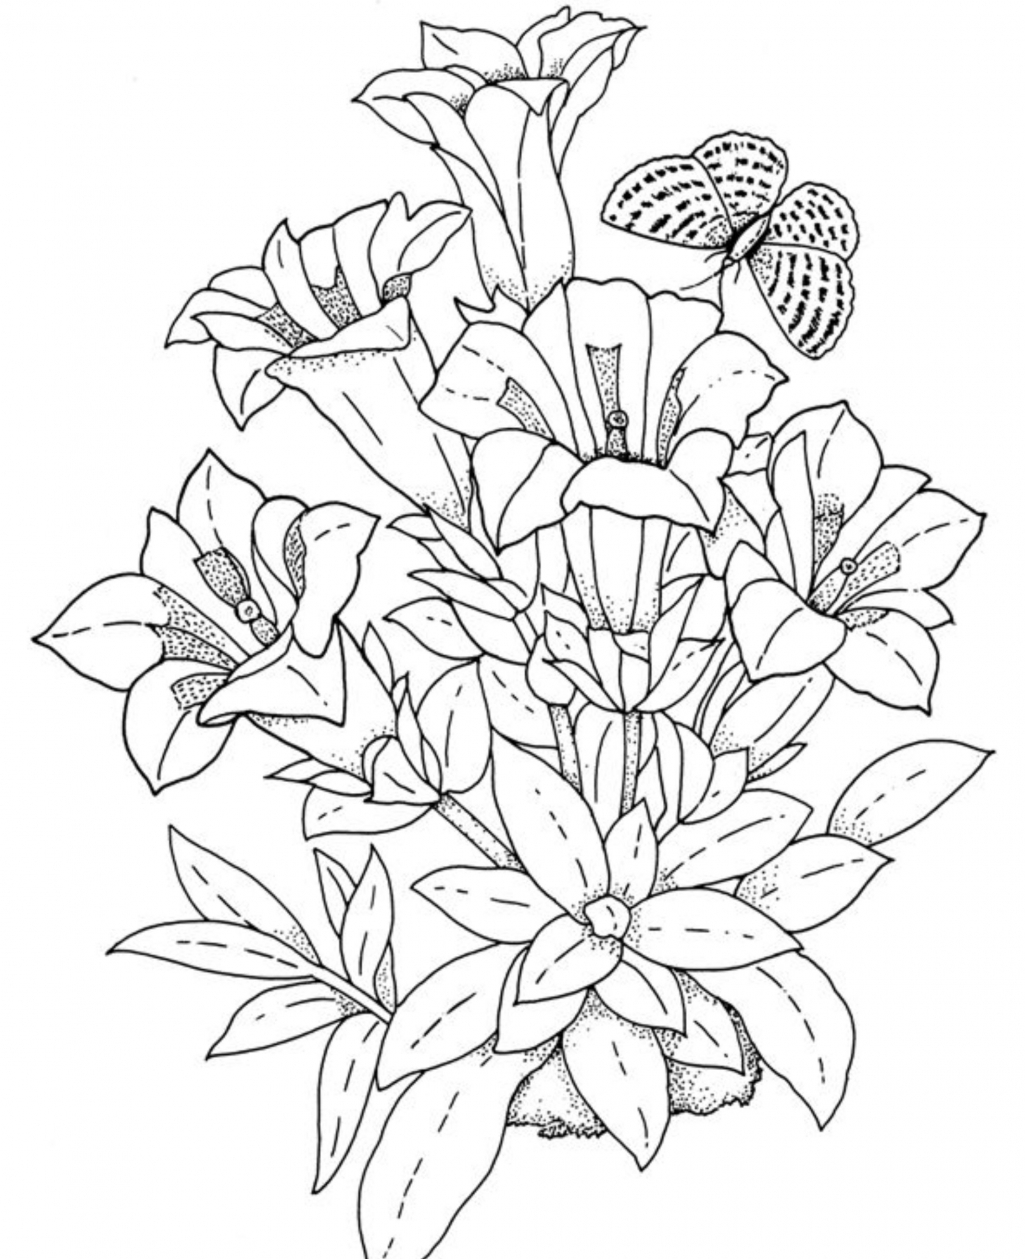 free printable flowers to color free printable flower coloring pages for kids best flowers to printable color free